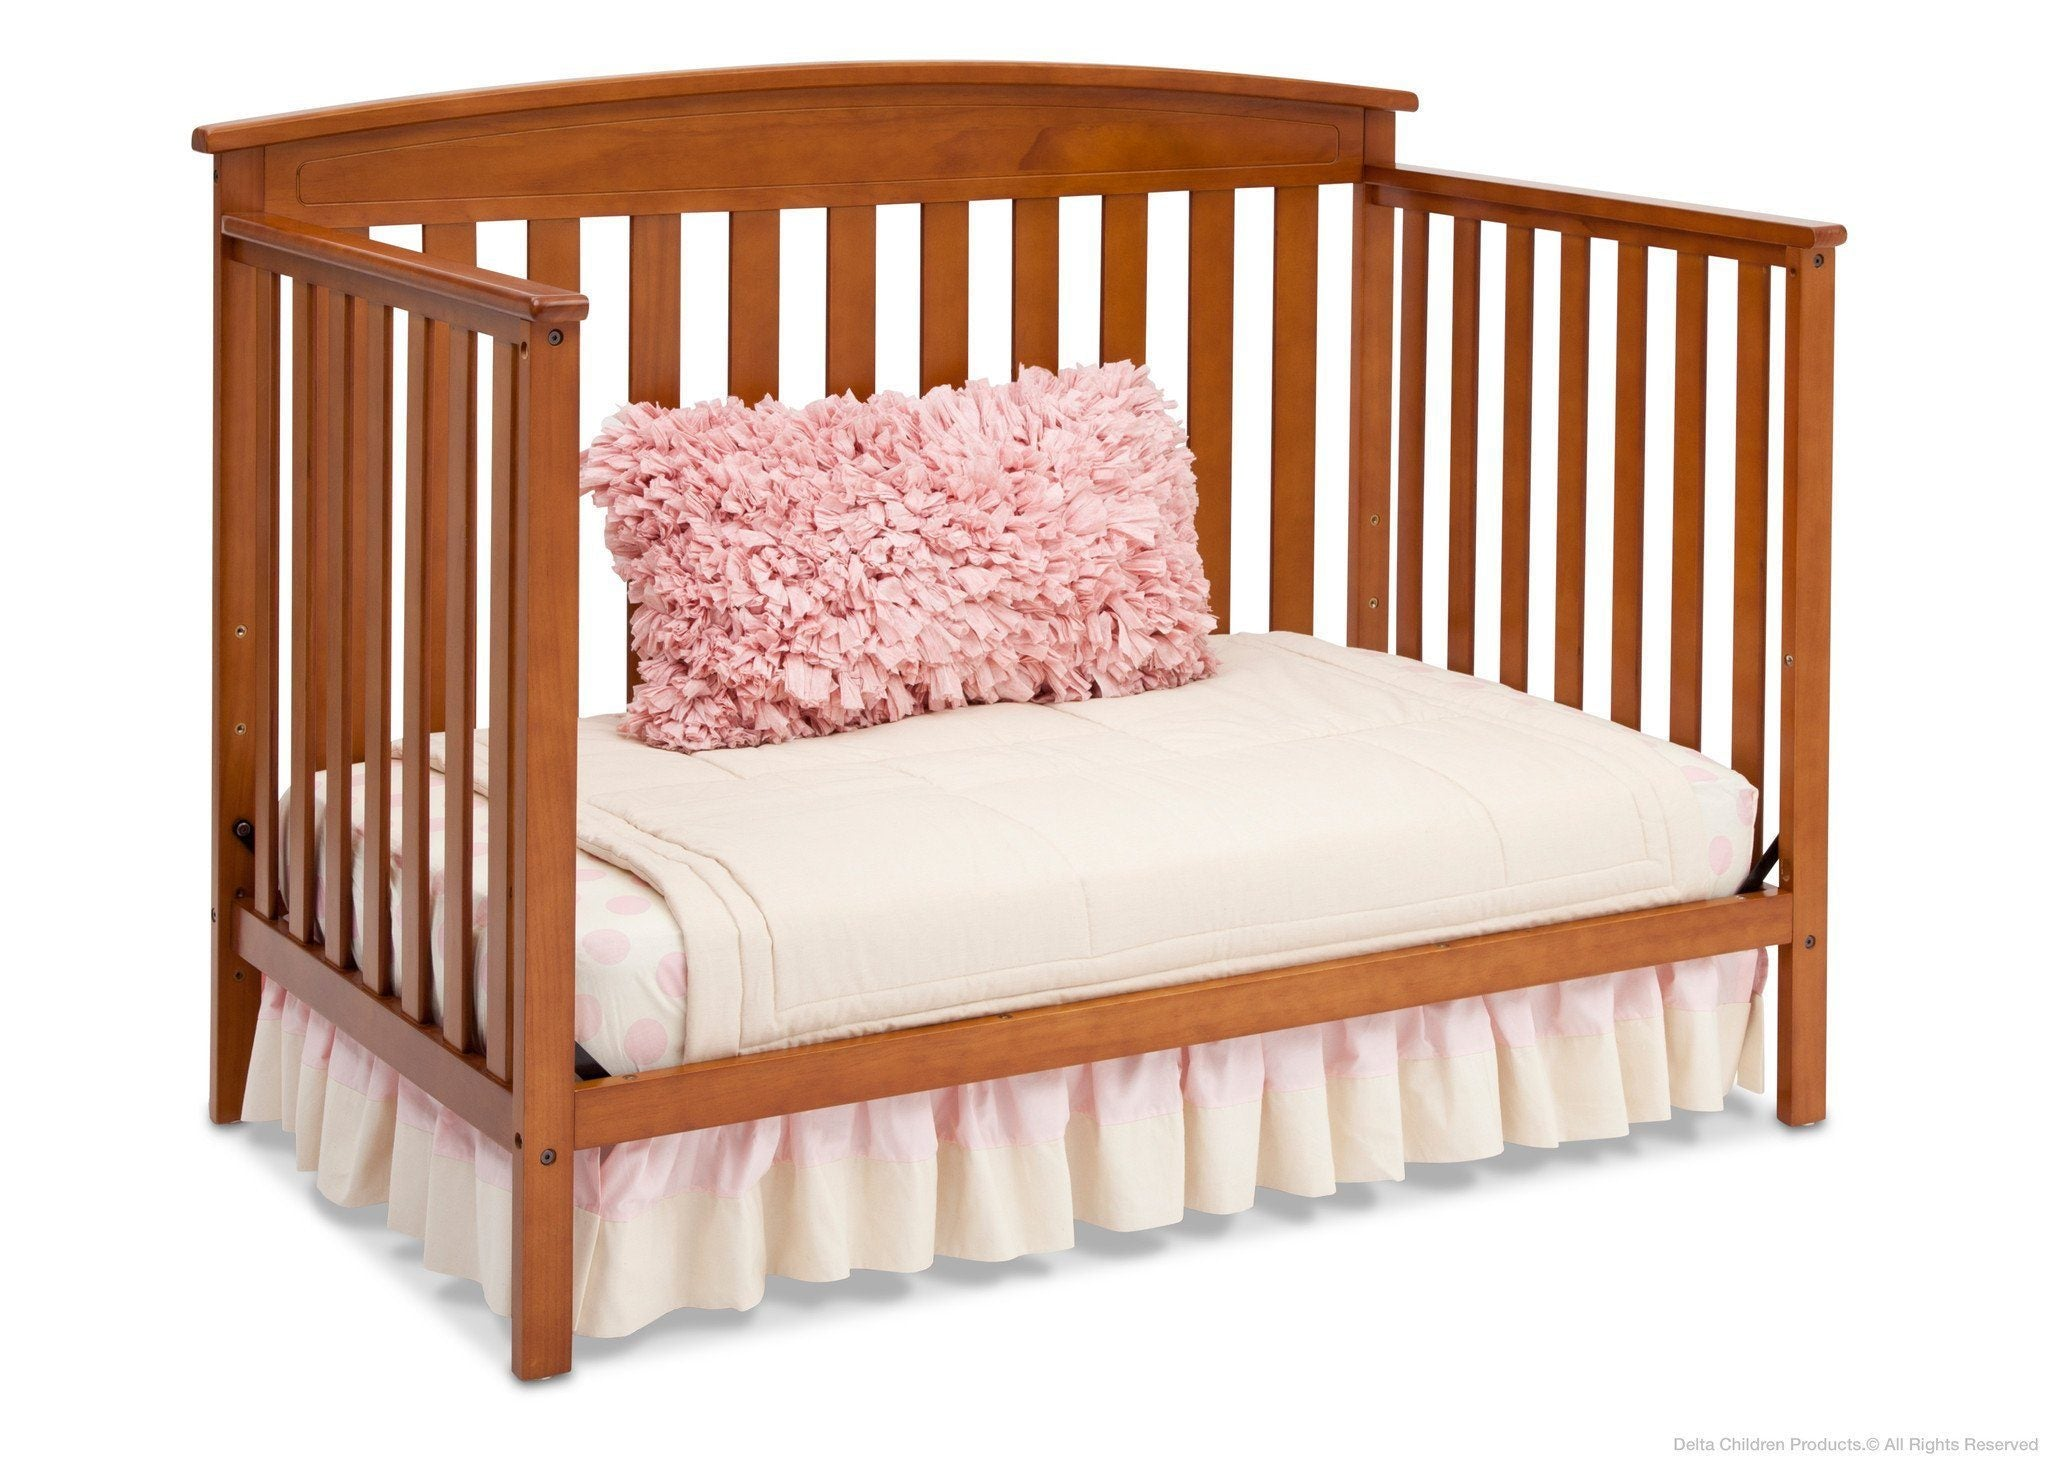 Delta Children Warm Honey (251) Gateway 4-in-1 Crib, Day Bed Conversion e5e